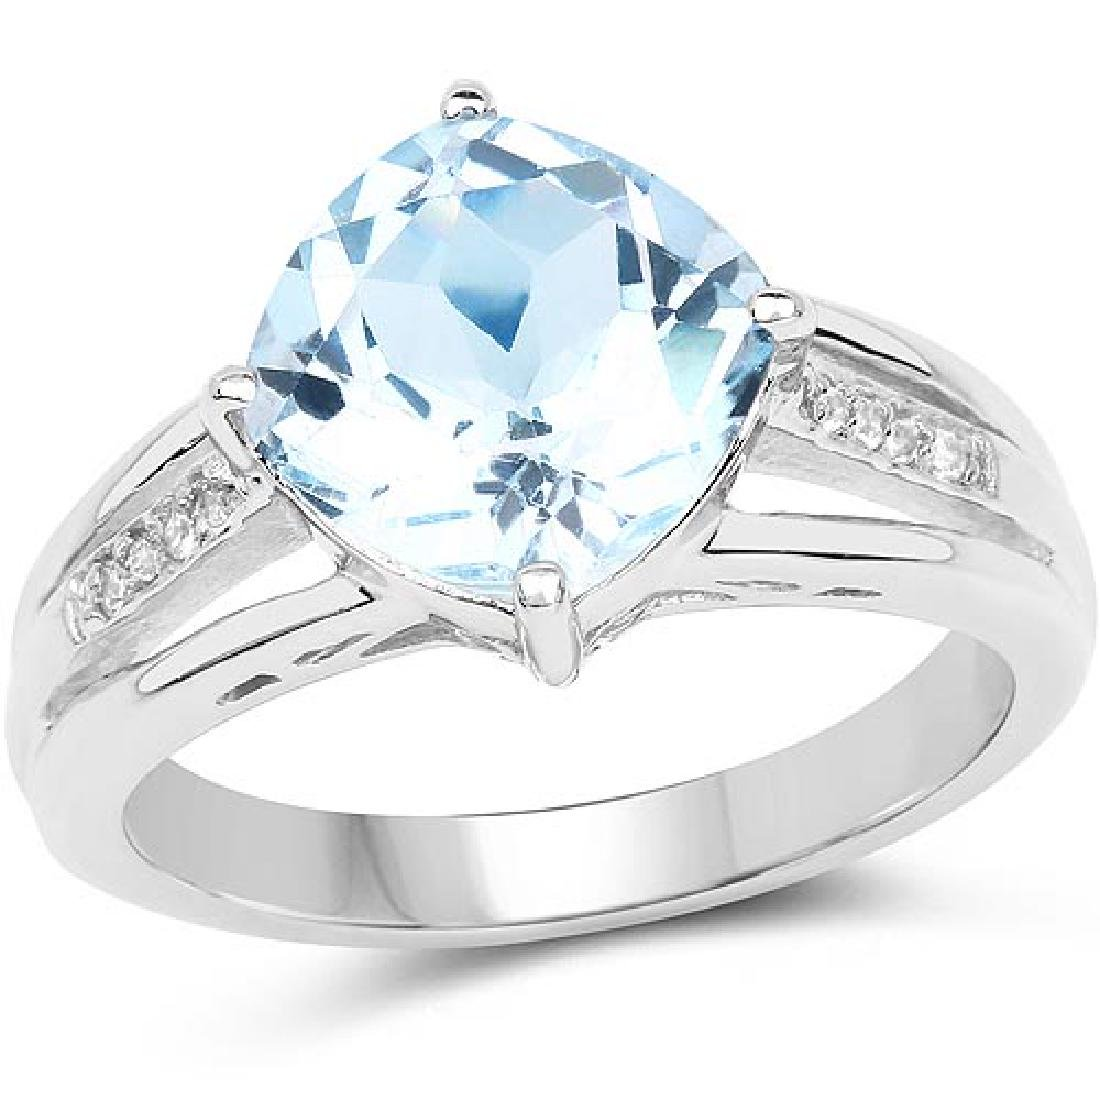 3.04 Carat Genuine Blue Topaz and White Topaz .925 Ster